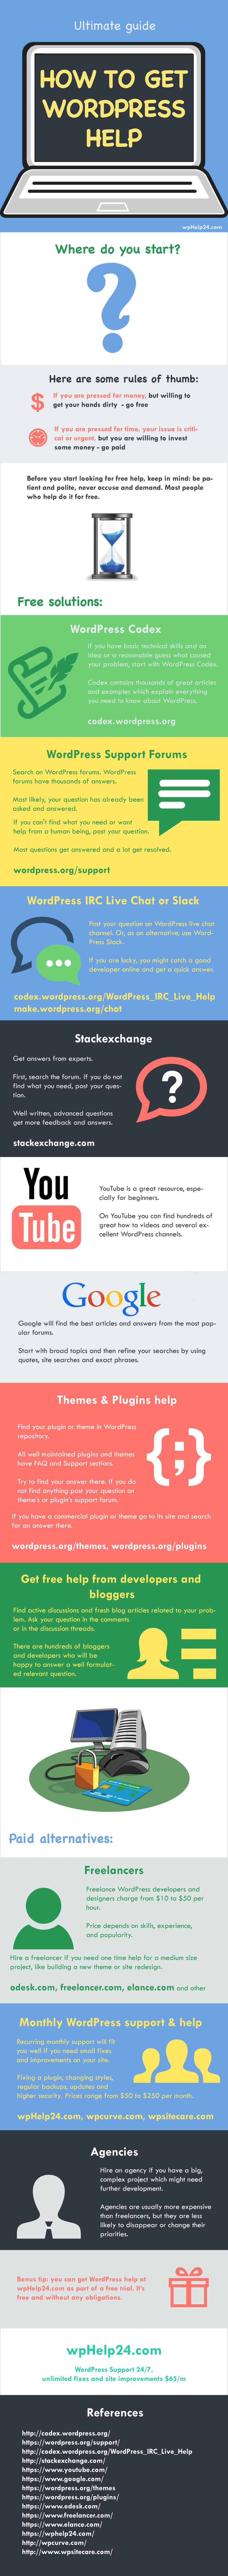 best images about infographic place marketing 11 easy ways how to get wordpress help in this infographic you will the best places to get wordpress both and paid forums wordpress help on